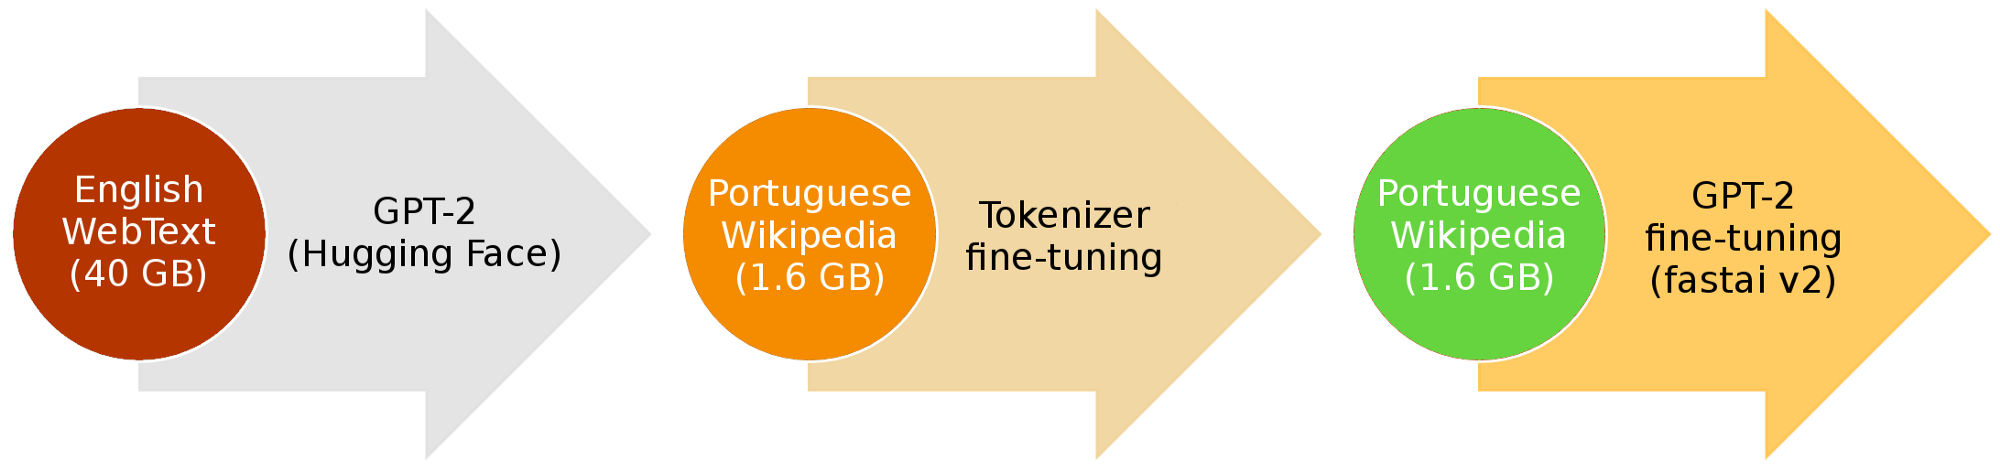 The 3 main steps of fine-tuning the English GPT-2 to Portuguese with Hugging Face and fastai v2 (image edited—fast.ai NLP)